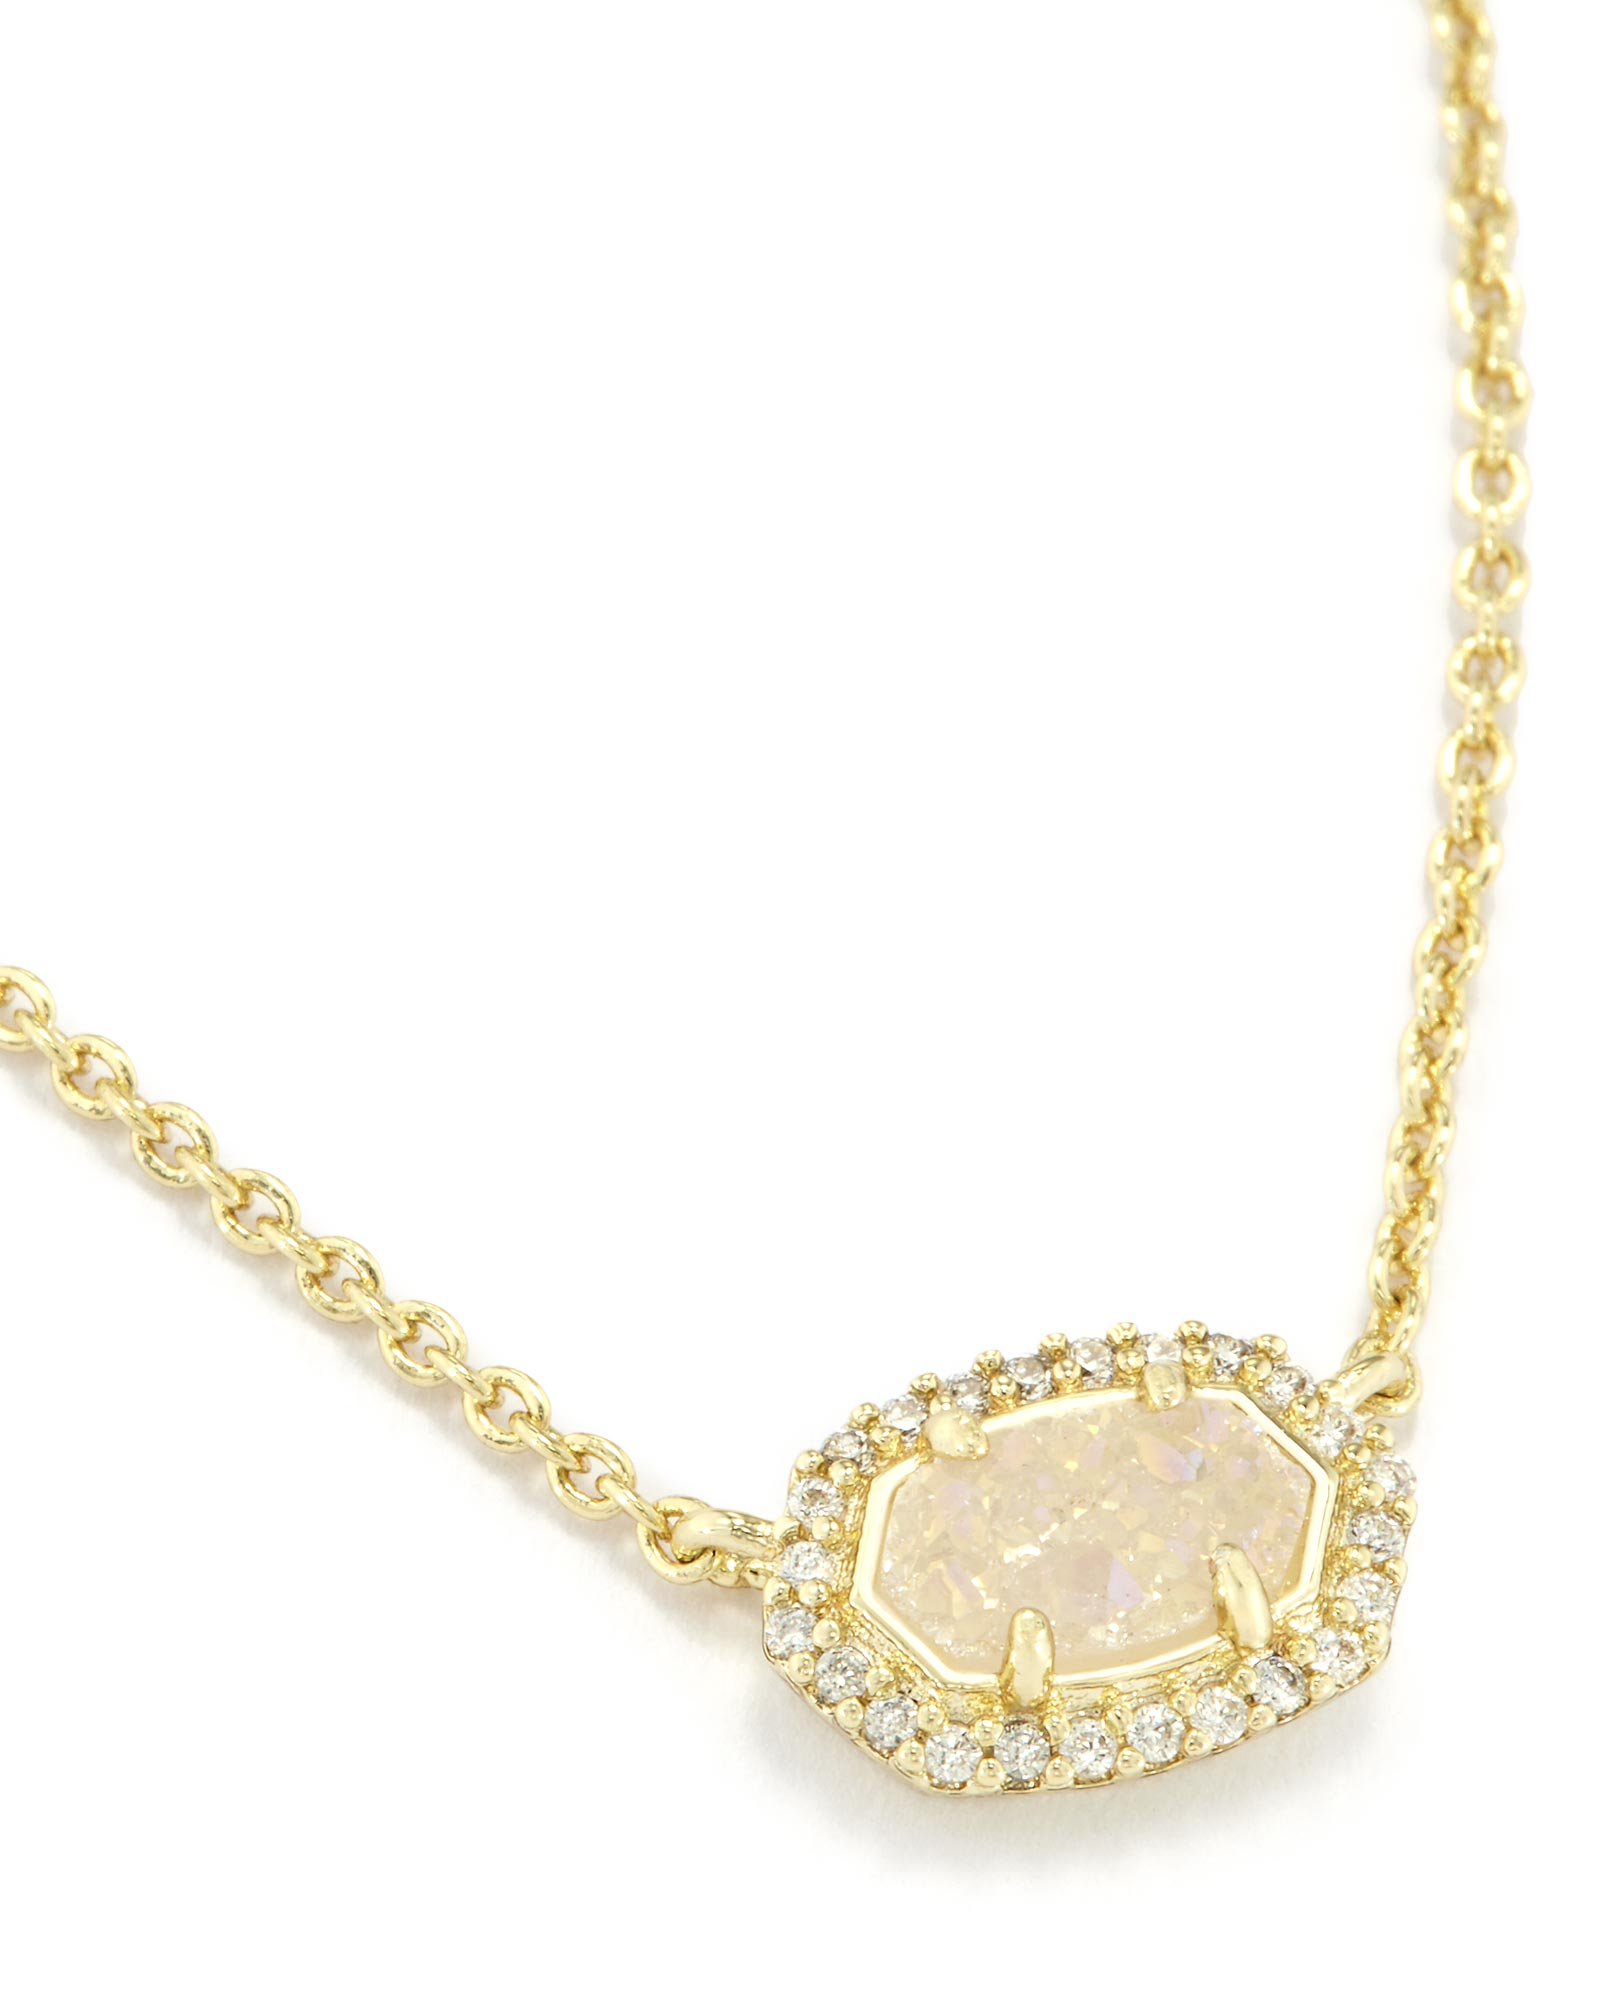 Chelsea Pendant Necklace in Gold